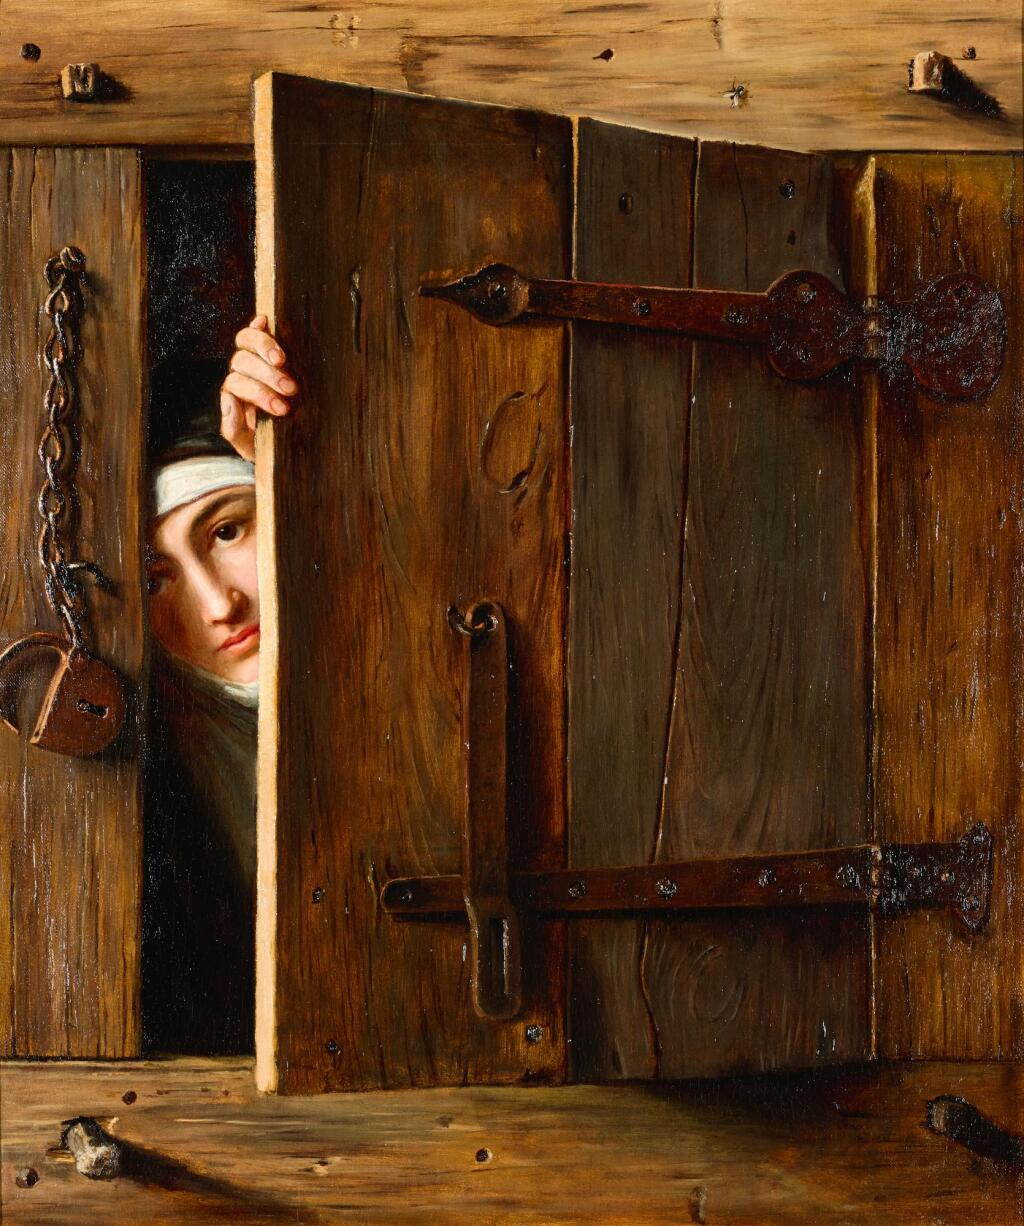 FRENCH SCHOOL, 19TH CENTURY | A trompe l'œil with a young nun peeking out through a shutter